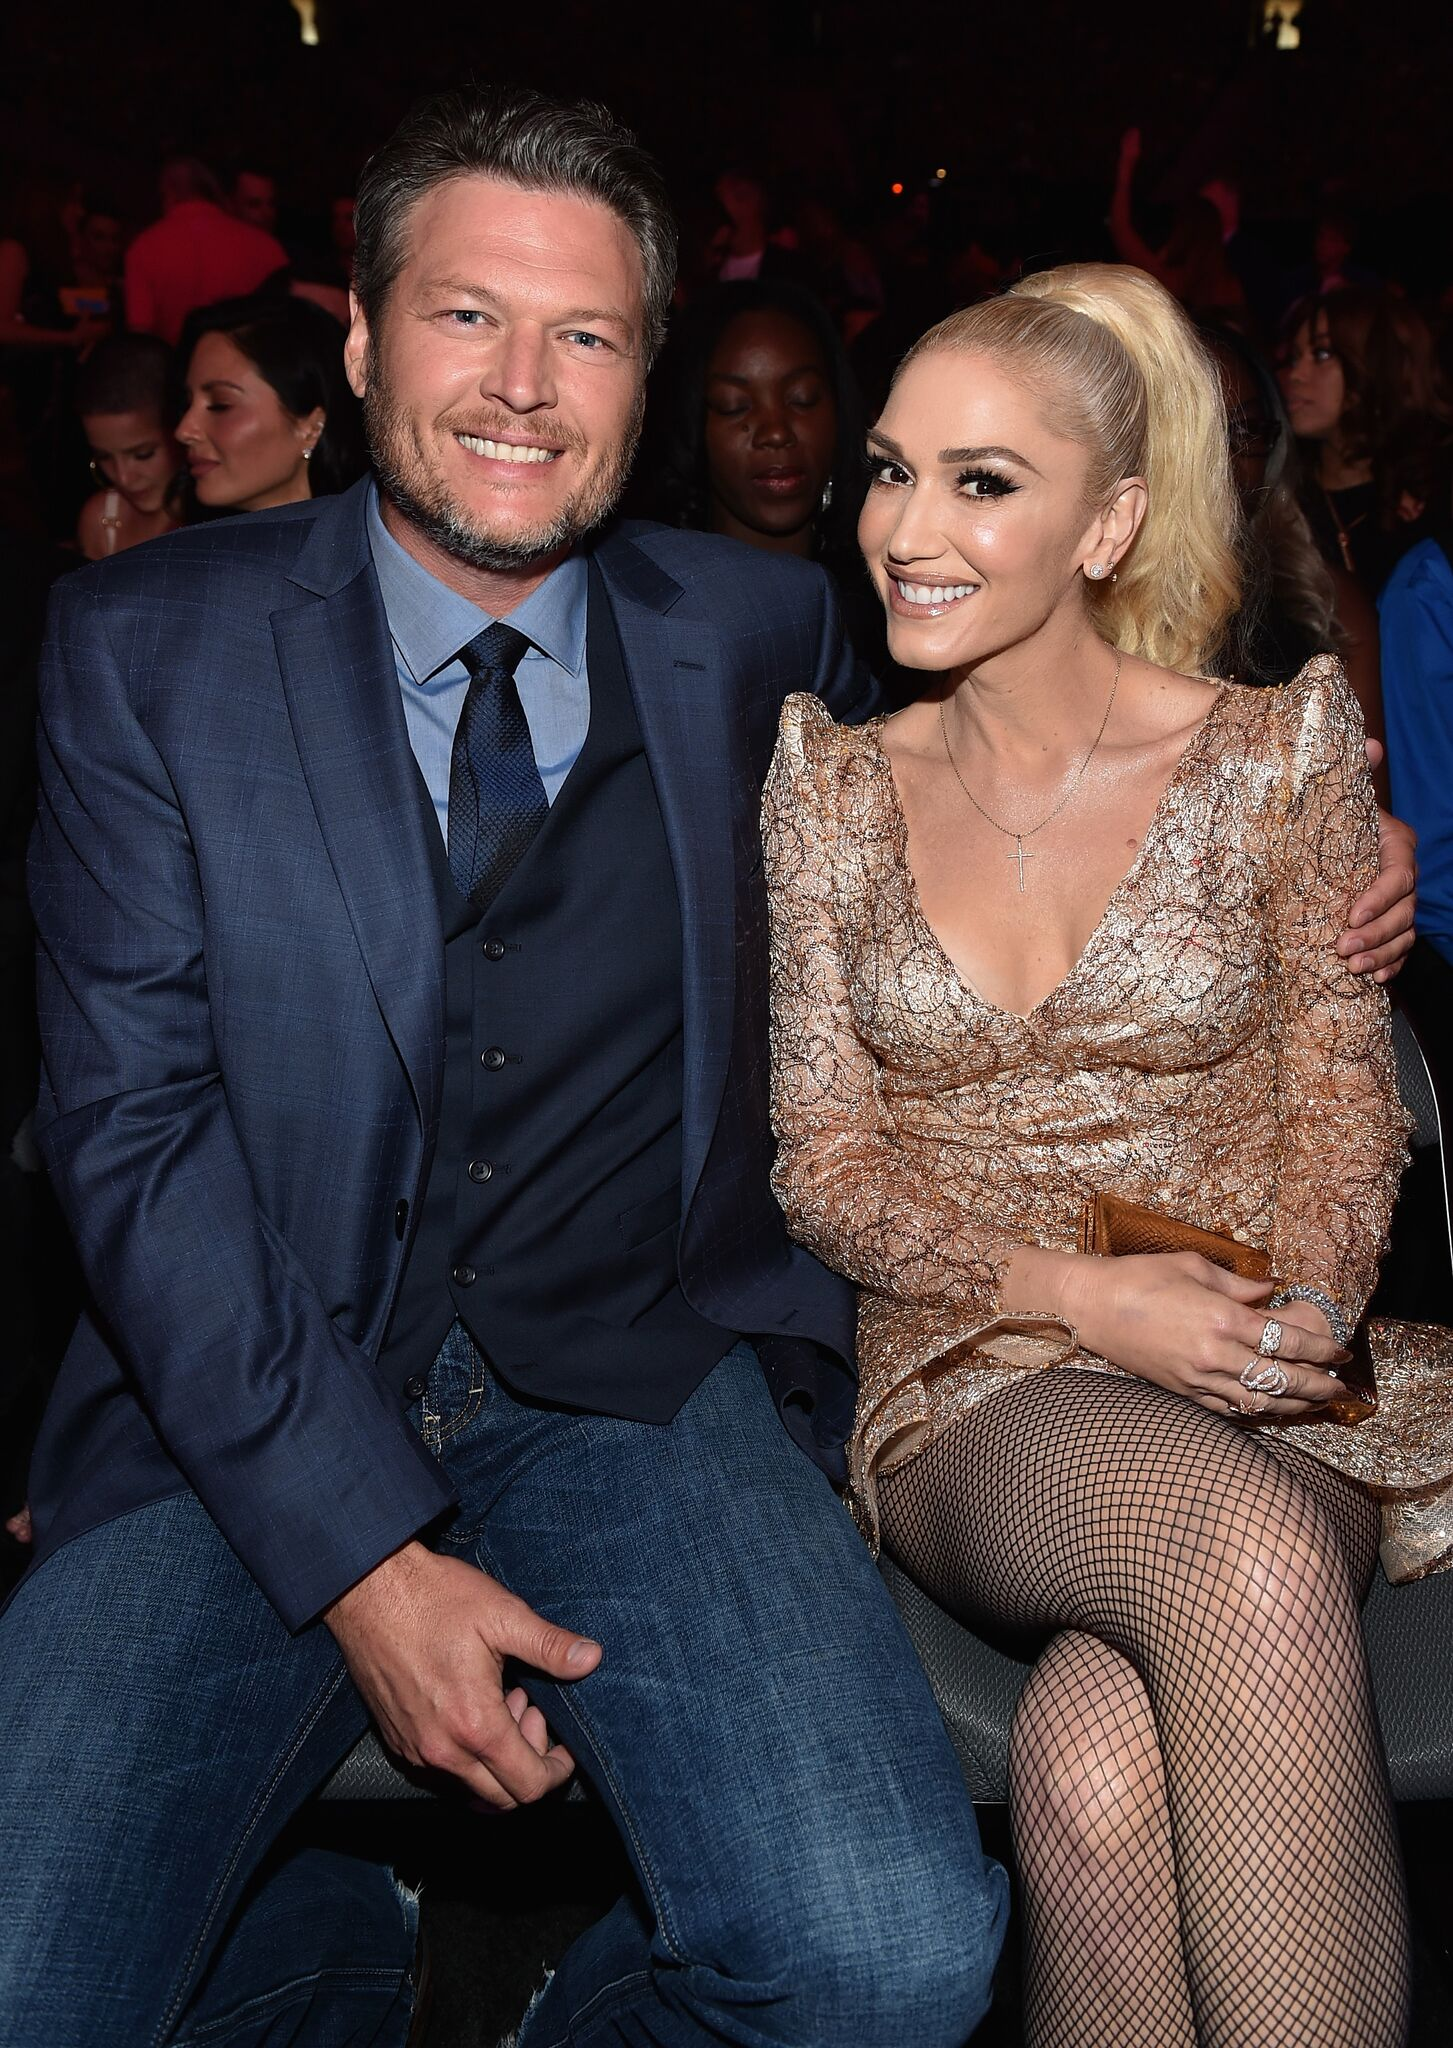 Recording artists Blake Shelton (L) and Gwen Stefani attend the 2017 Billboard Music Awards at T-Mobile Arena | Getty Images